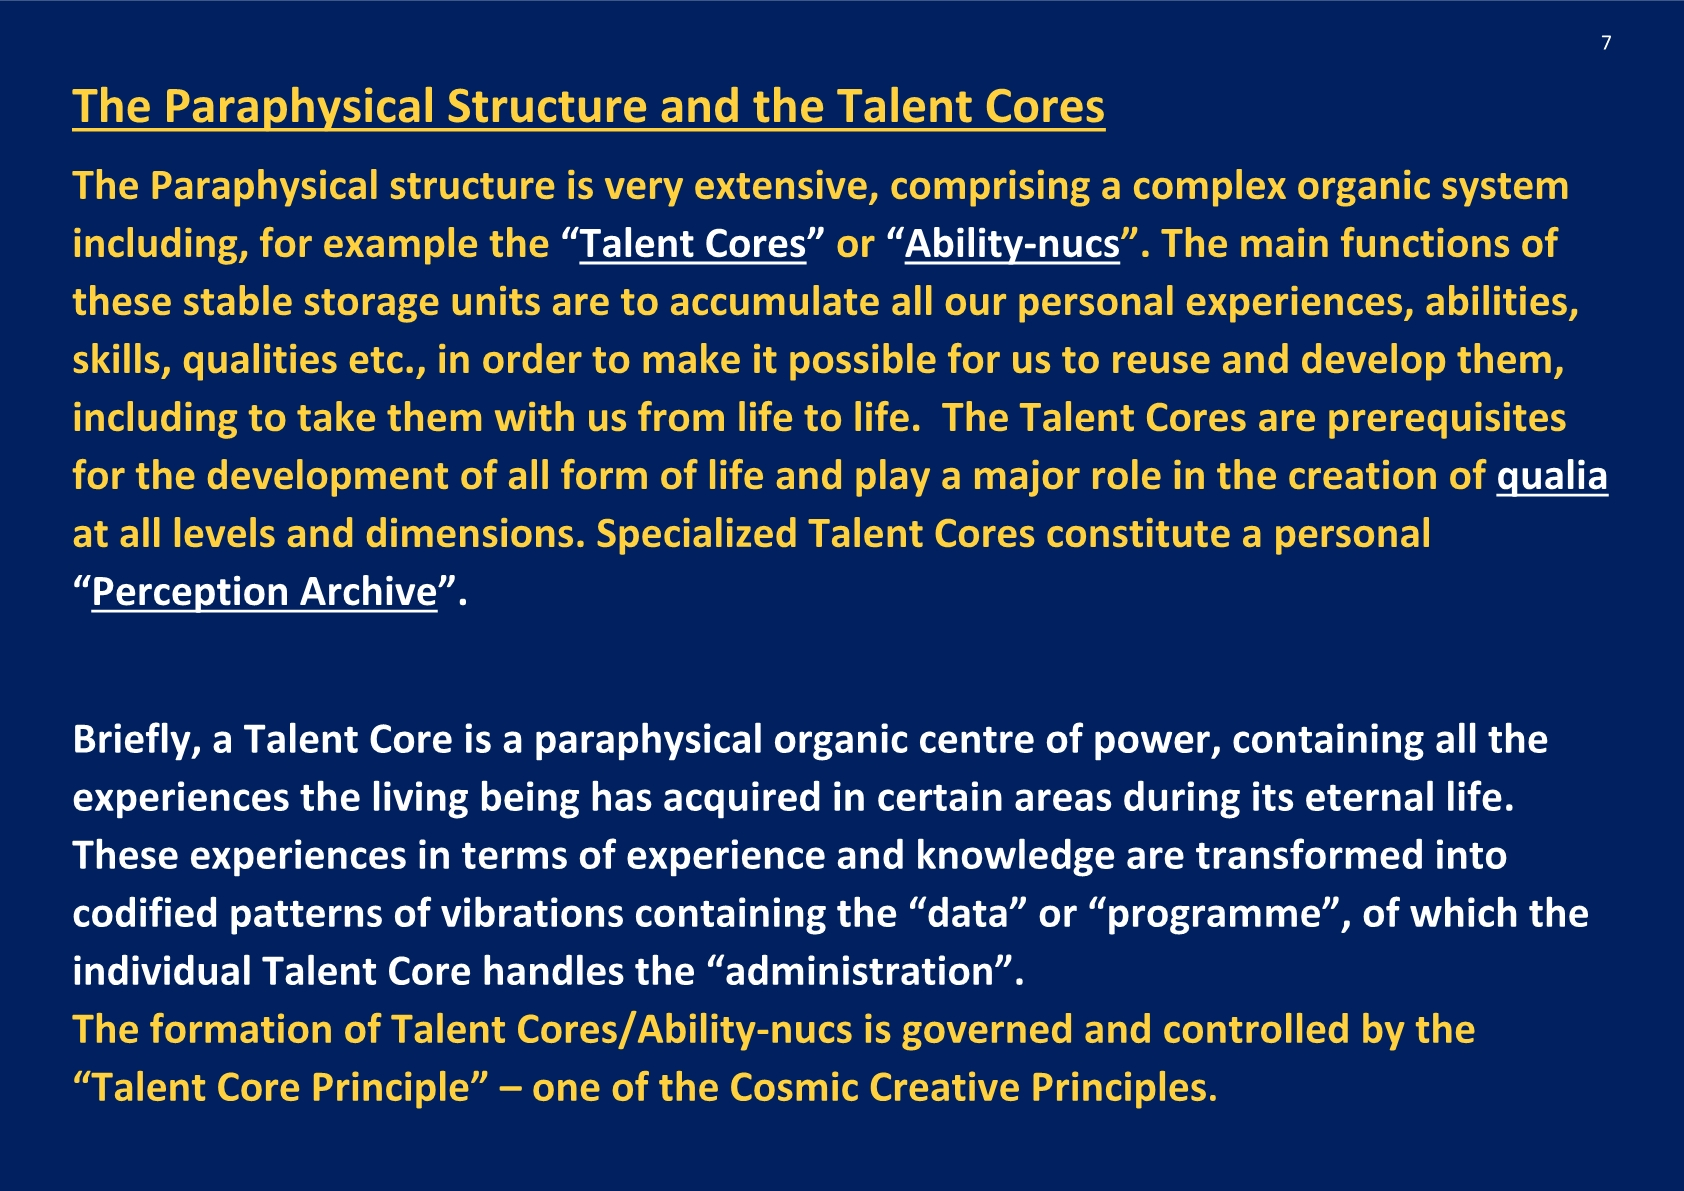 Paraphysical Structure and Talent Cores; NCP X-AIONS